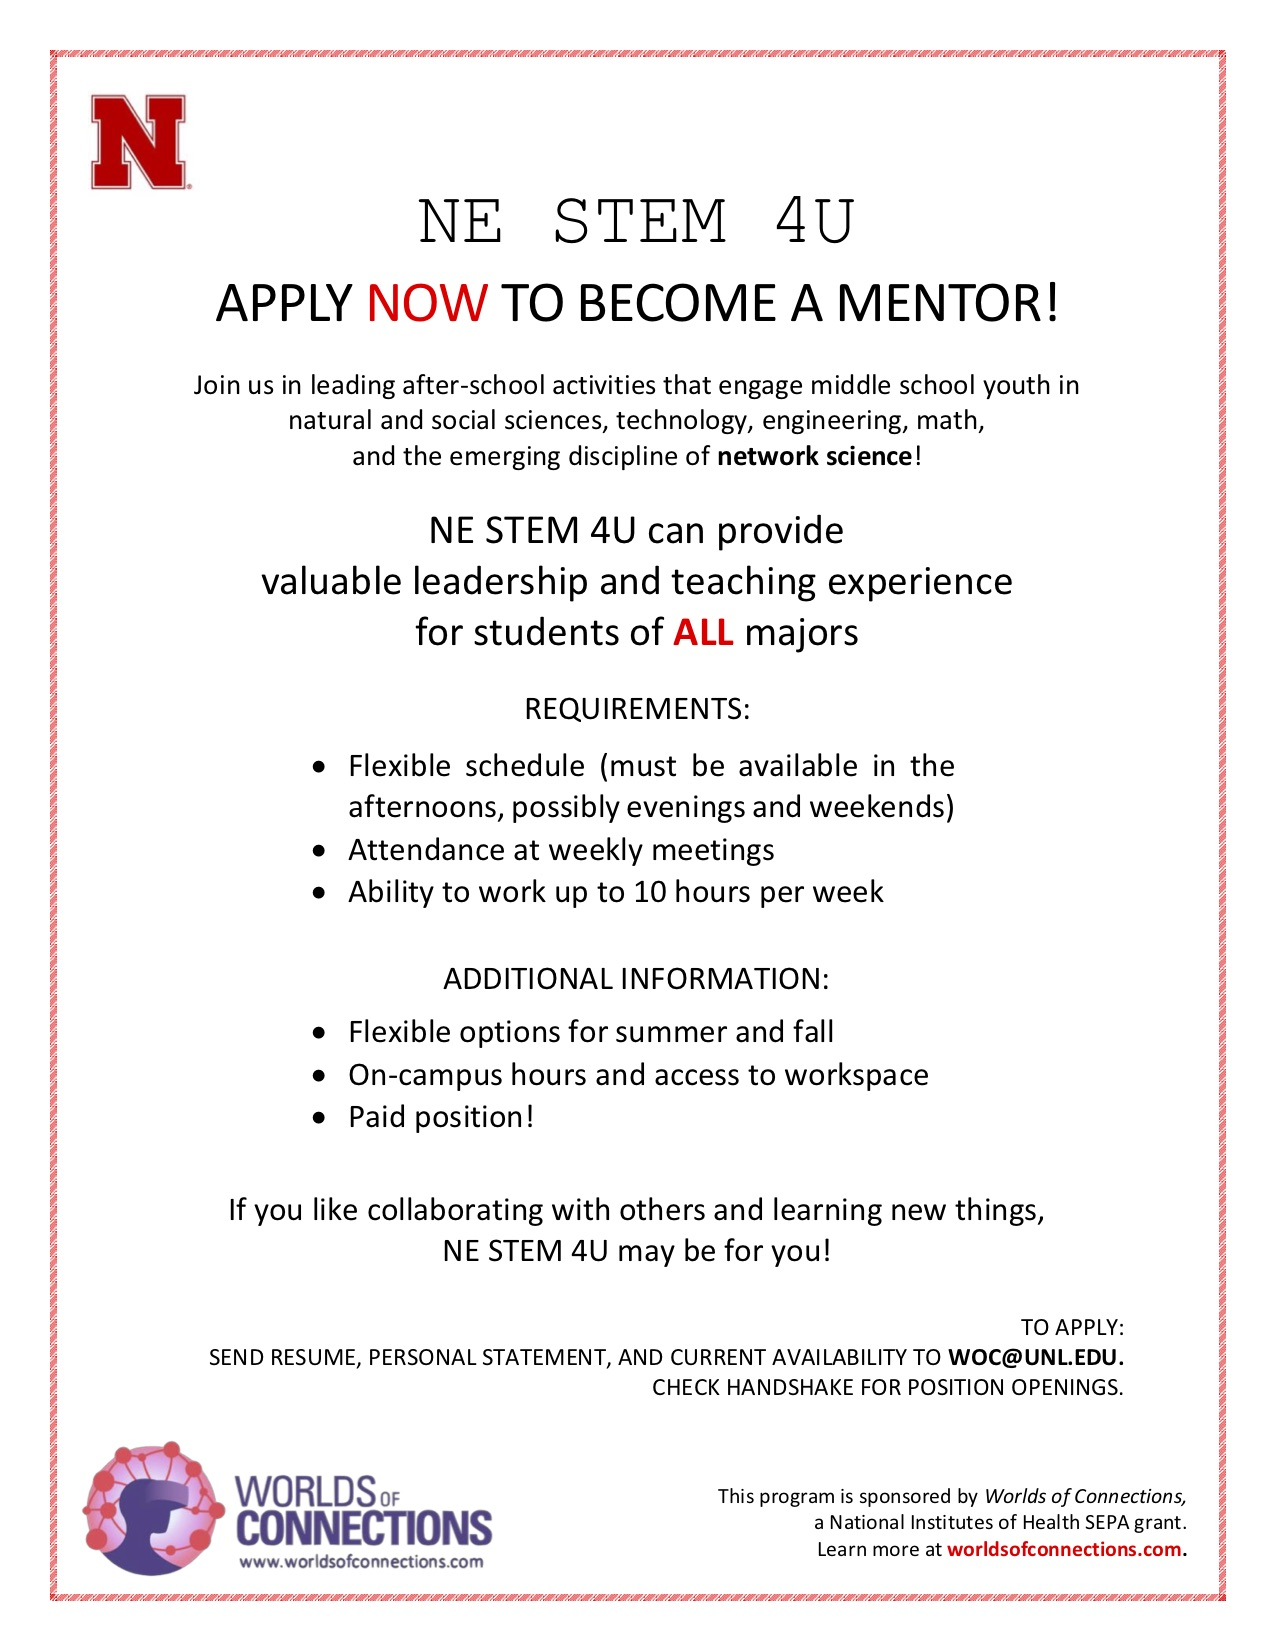 Hiring flyer that reads: NE STEM 4U APPLY NOW TO BECOME A MENTOR! Join us in leading after-school activities that engage middle school youth in natural and social sciences, technology, engineering, math, and the emerging discipline of network science! NE STEM 4U can provide valuable leadership and teaching experience for students of ALL majors REQUIREMENTS: • Flexible schedule (must be available in the afternoons, possibly evenings and weekends) • Attendance at weekly meetings • Ability to work up to 10 hours per week ADDITIONAL INFORMATION: • Flexible options for summer and fall • On-campus hours and access to workspace • Paid position! If you like collaborating with others and learning new things, NE STEM 4U may be for you! TO APPLY: SEND RESUME, PERSONAL STATEMENT, AND CURRENT AVAILABILITY TO WOC@UNL.EDU. CHECK HANDSHAKE FOR POSITION OPENINGS.